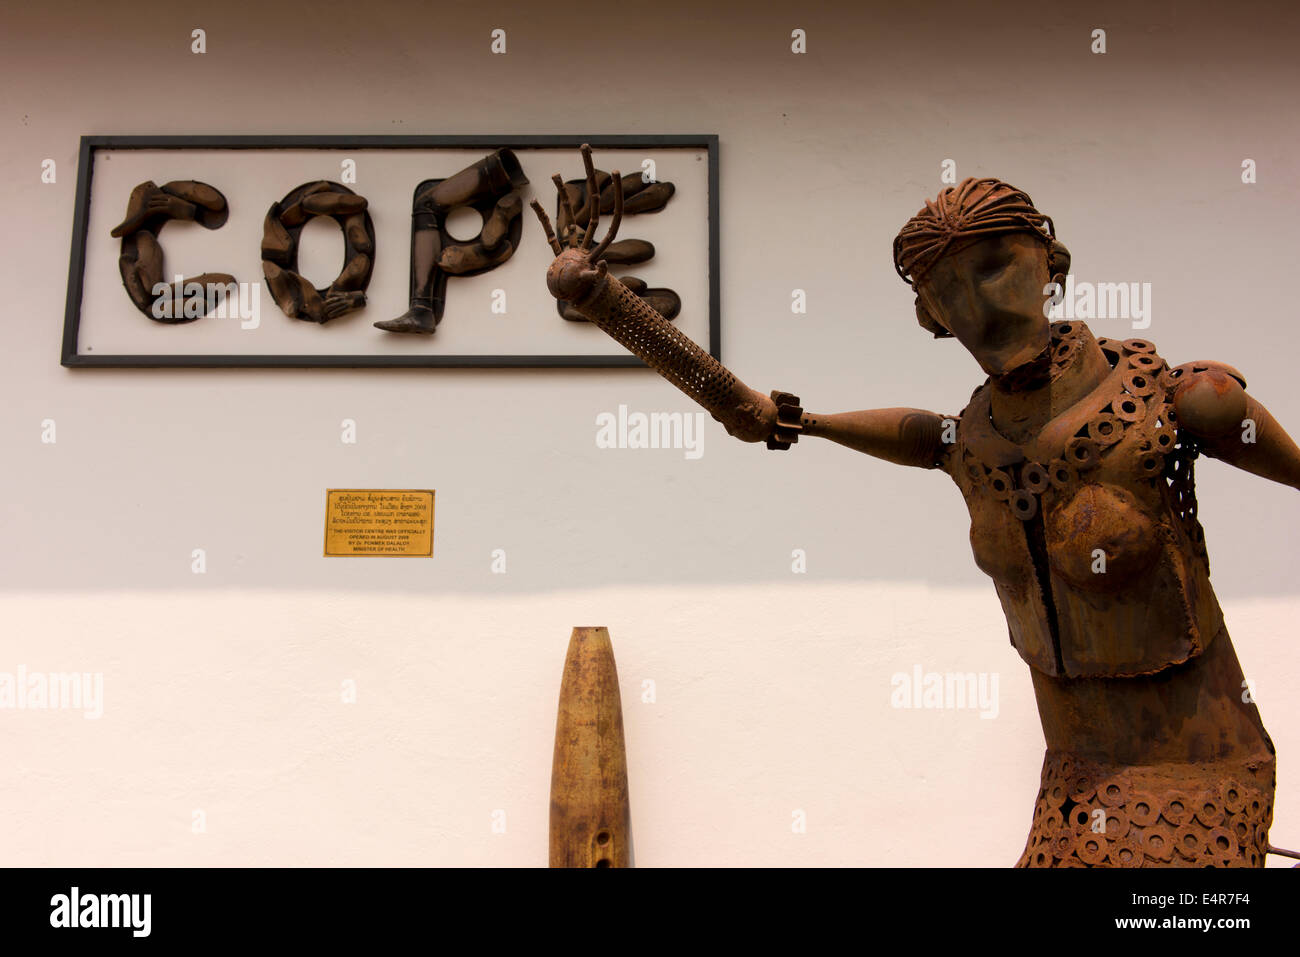 Statue made of unexploded ordnance (UXO) of a woman outside the COPE center which helps survivors of UXO. - Stock Image